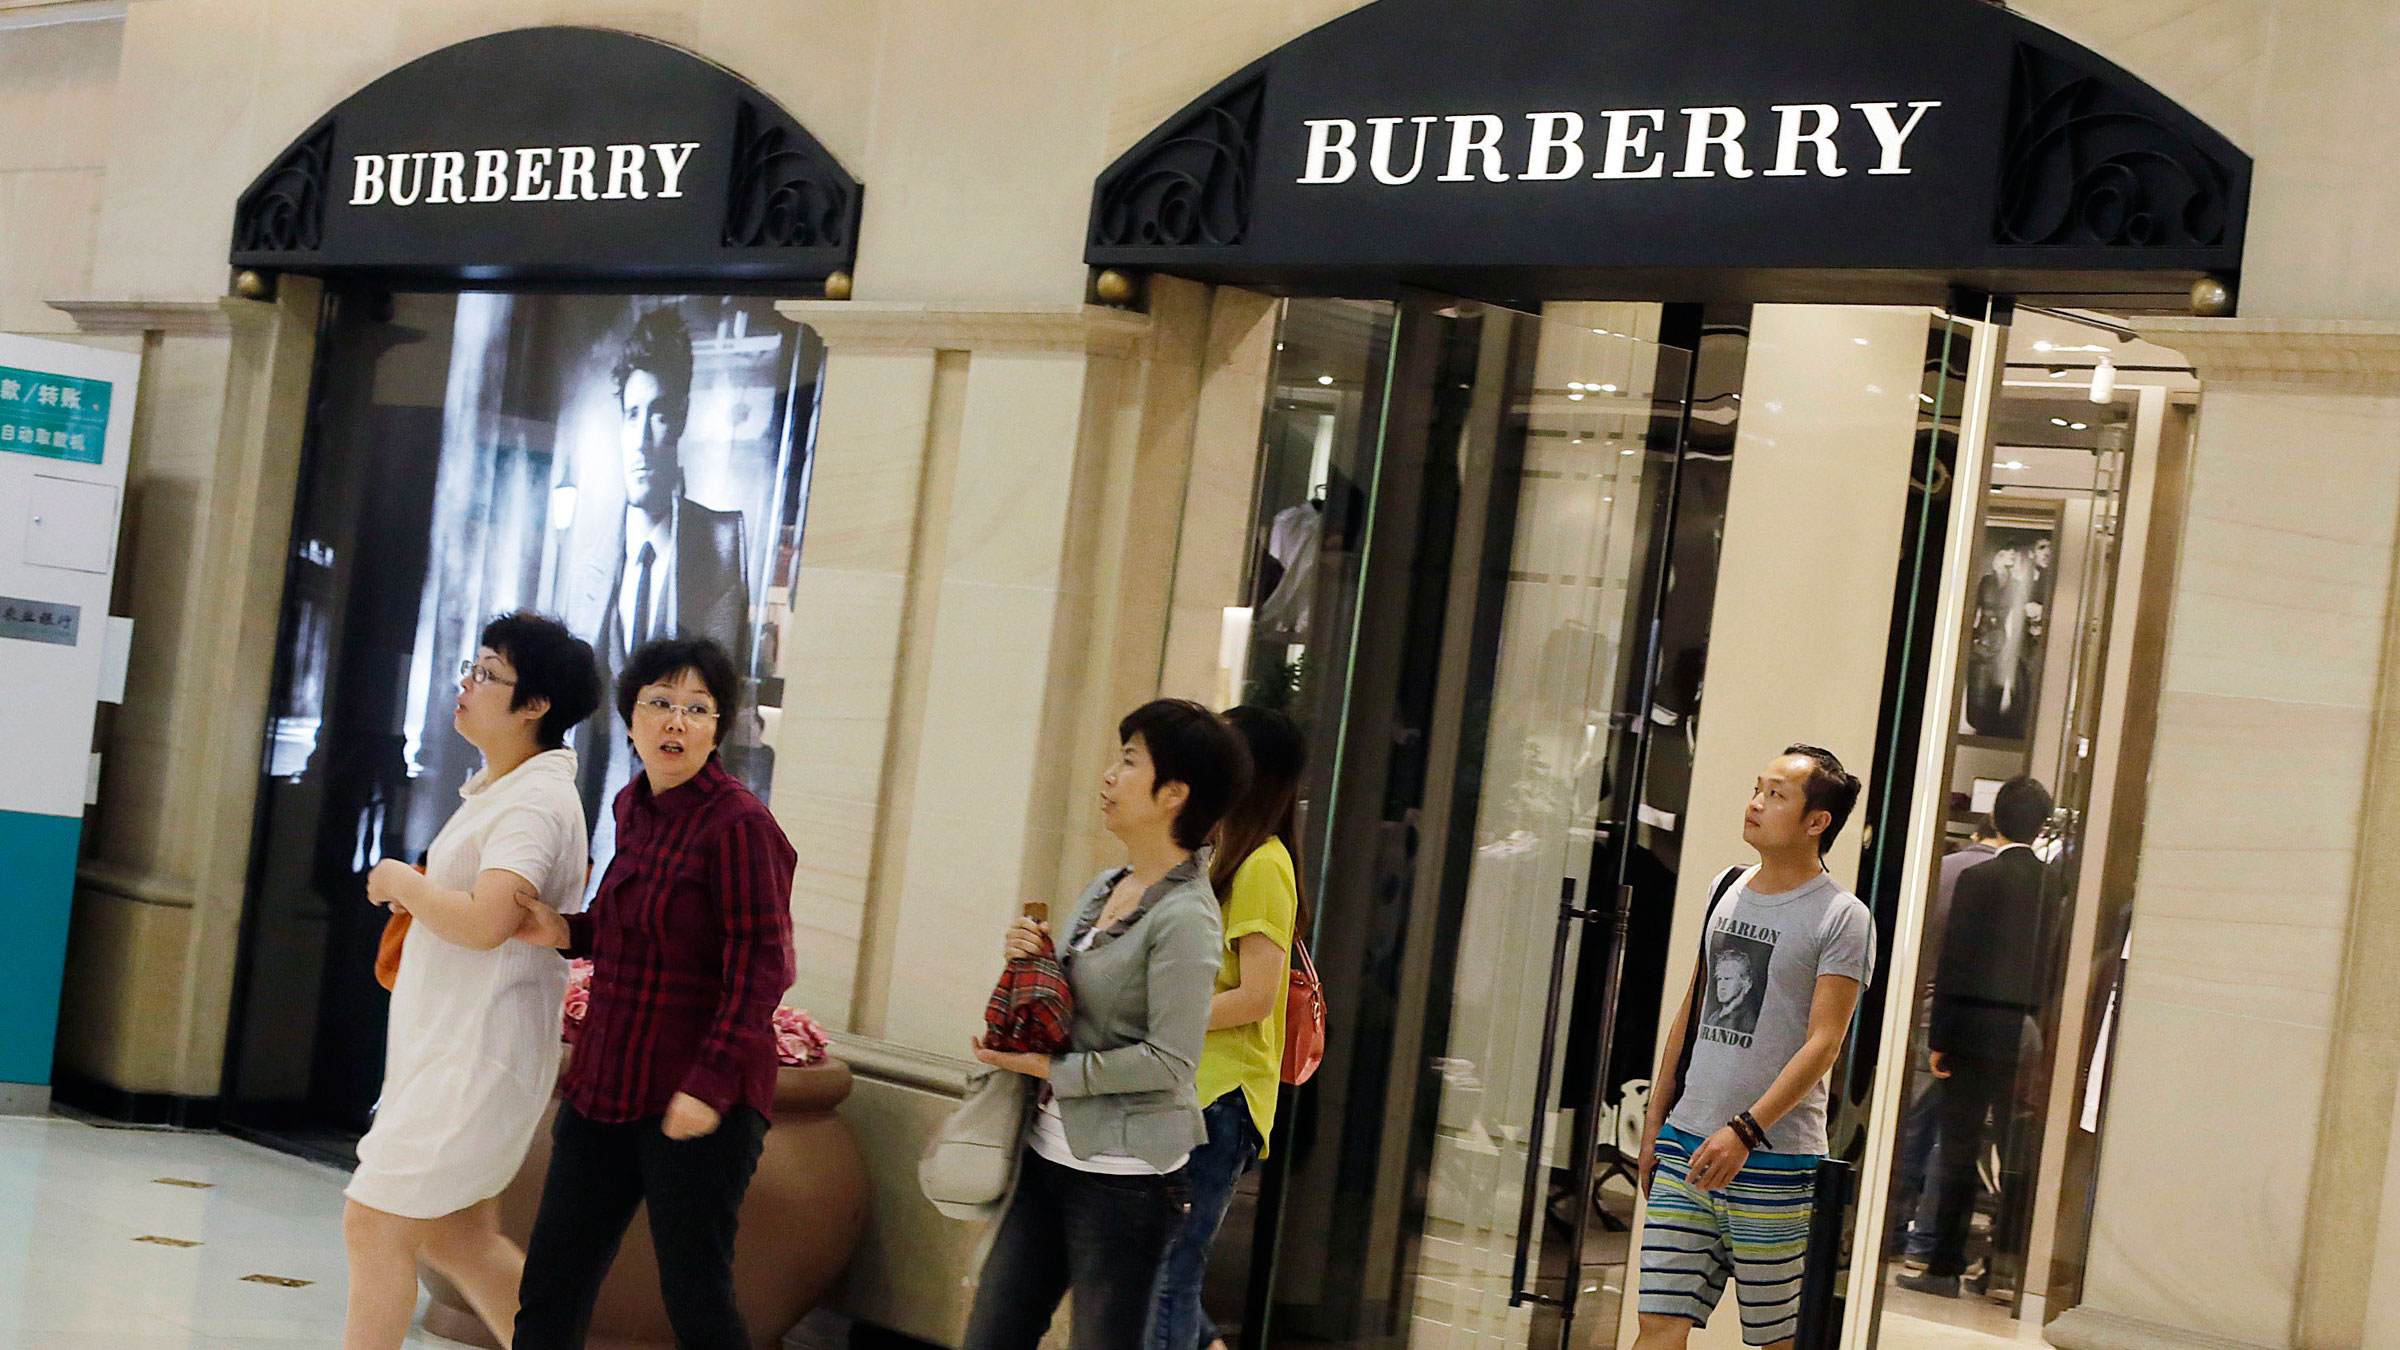 Burberry issued a profit warning based on lower Chinese gift giving.